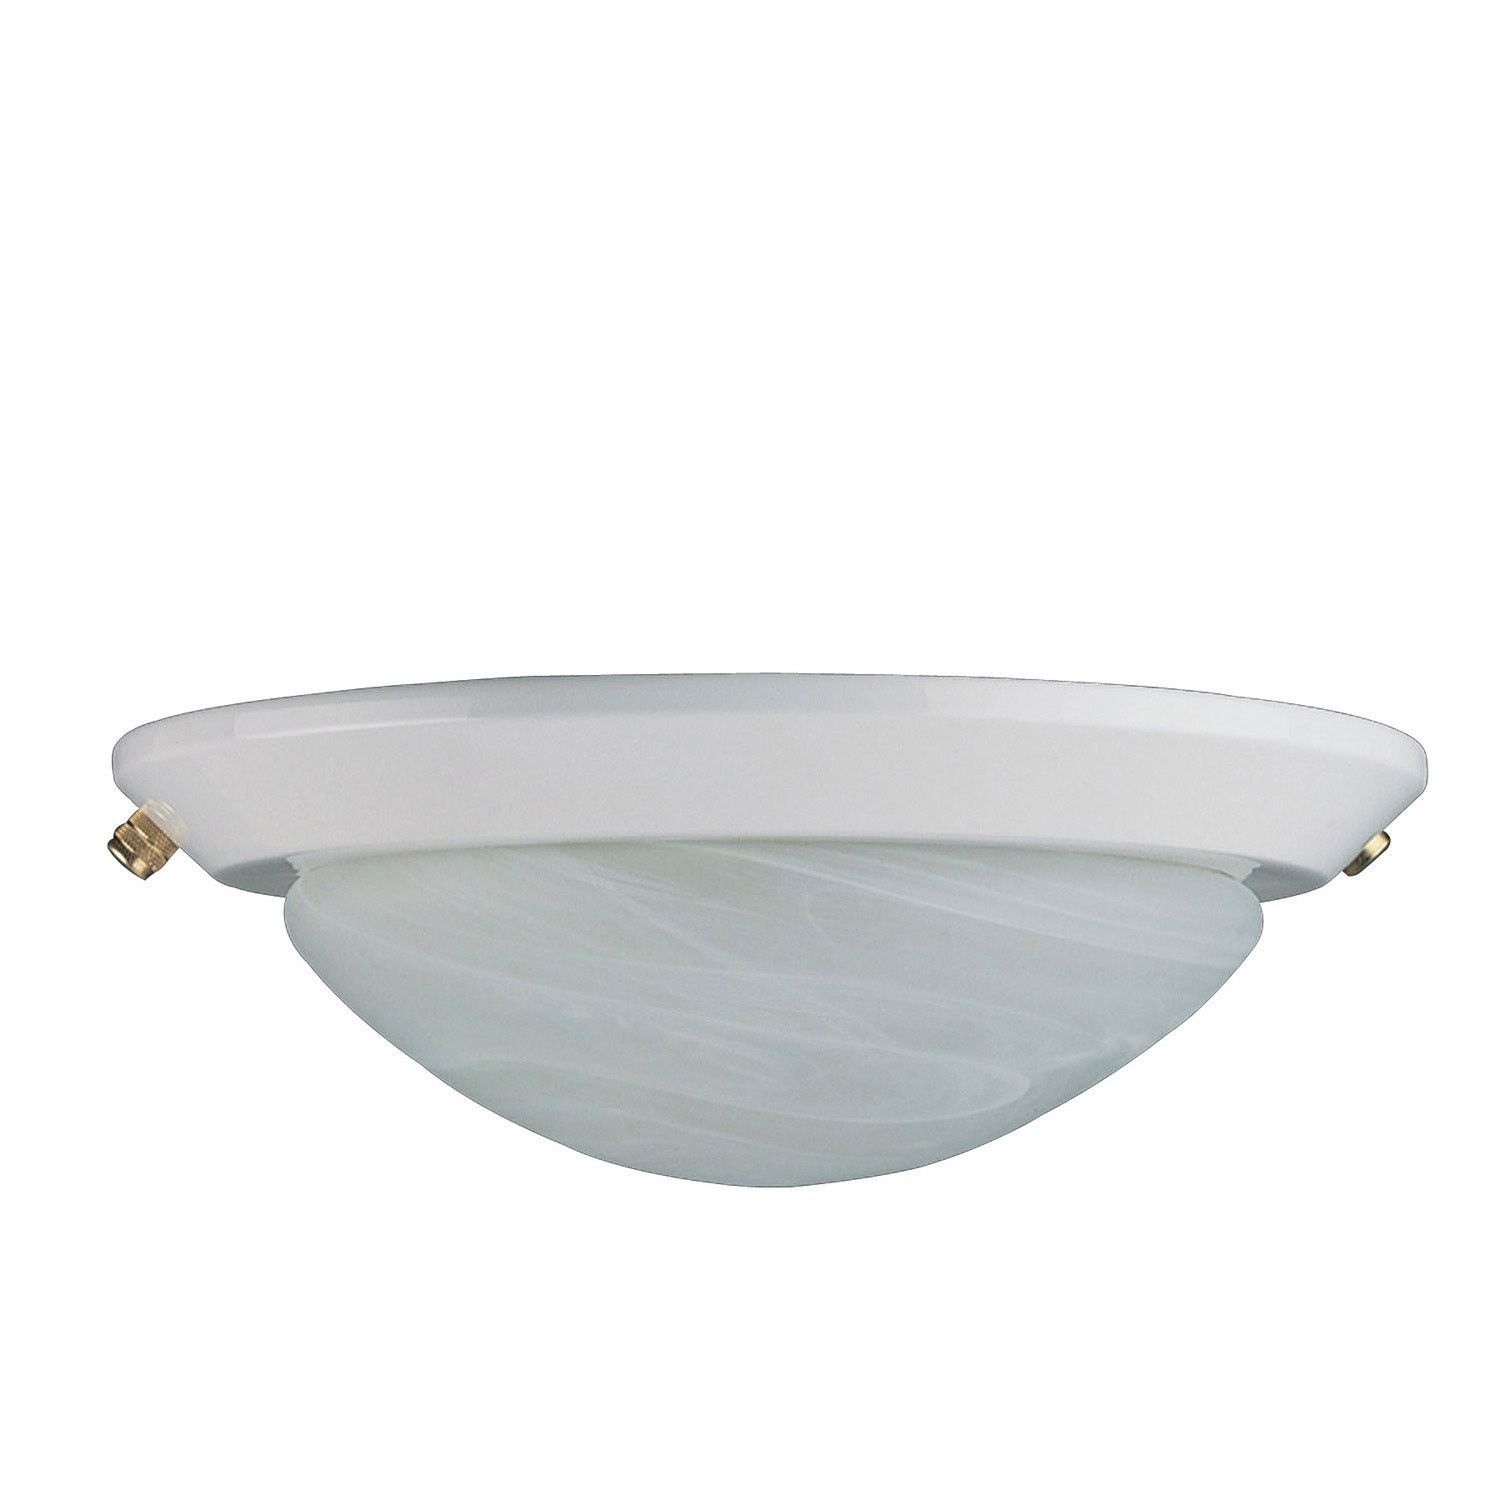 Concord Fans 2 Light White Finish Low Profile Ceiling Fan Light